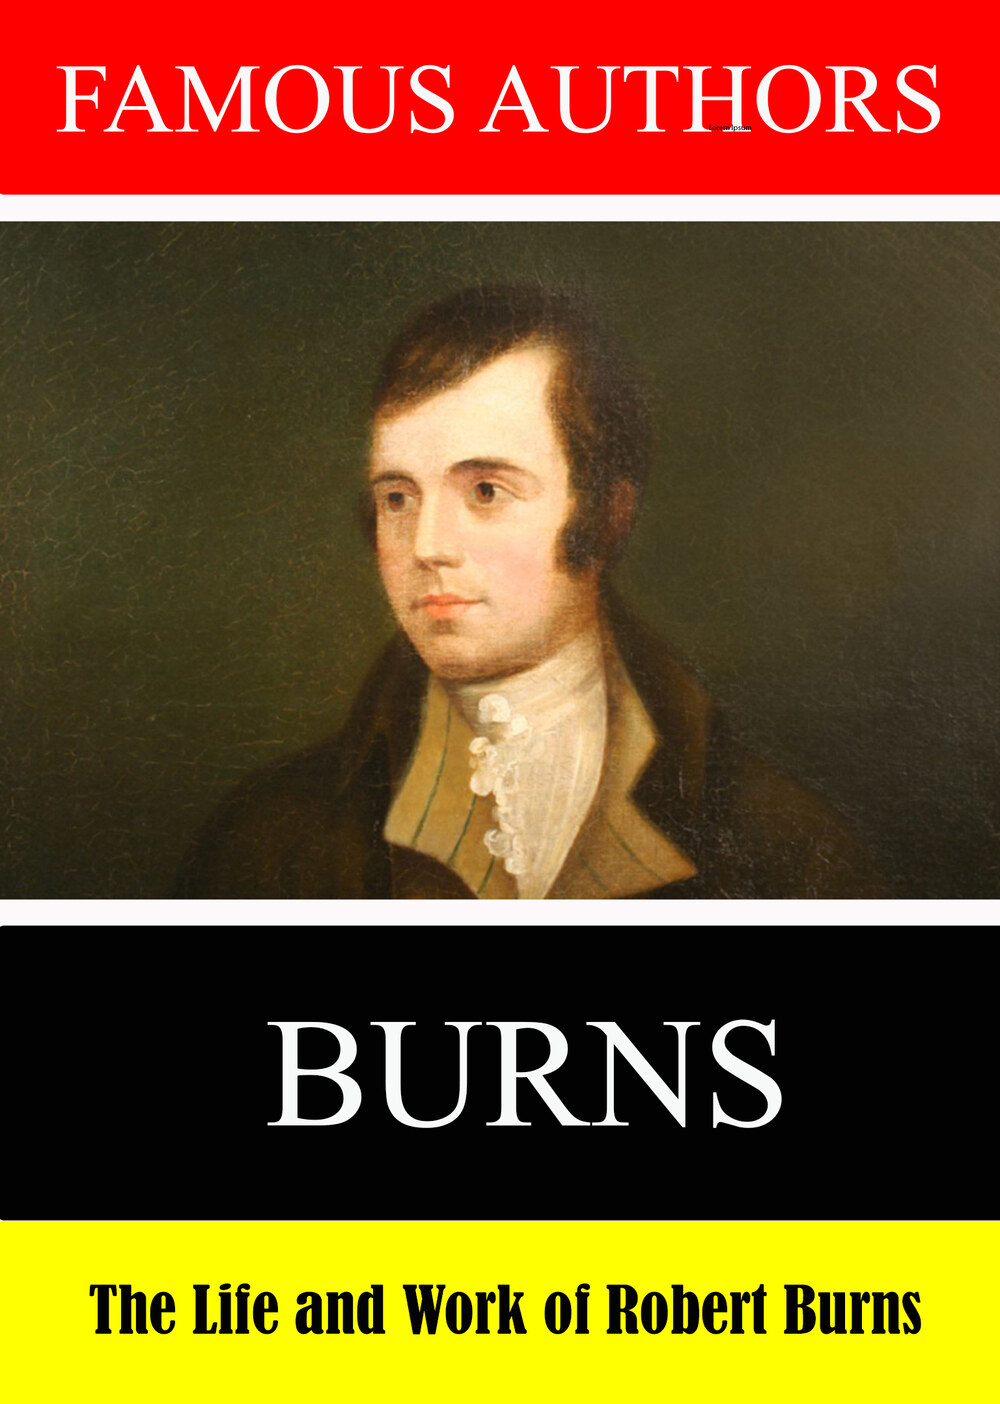 L7874 - Famous Authors:  The Life and Work of Robert Burns